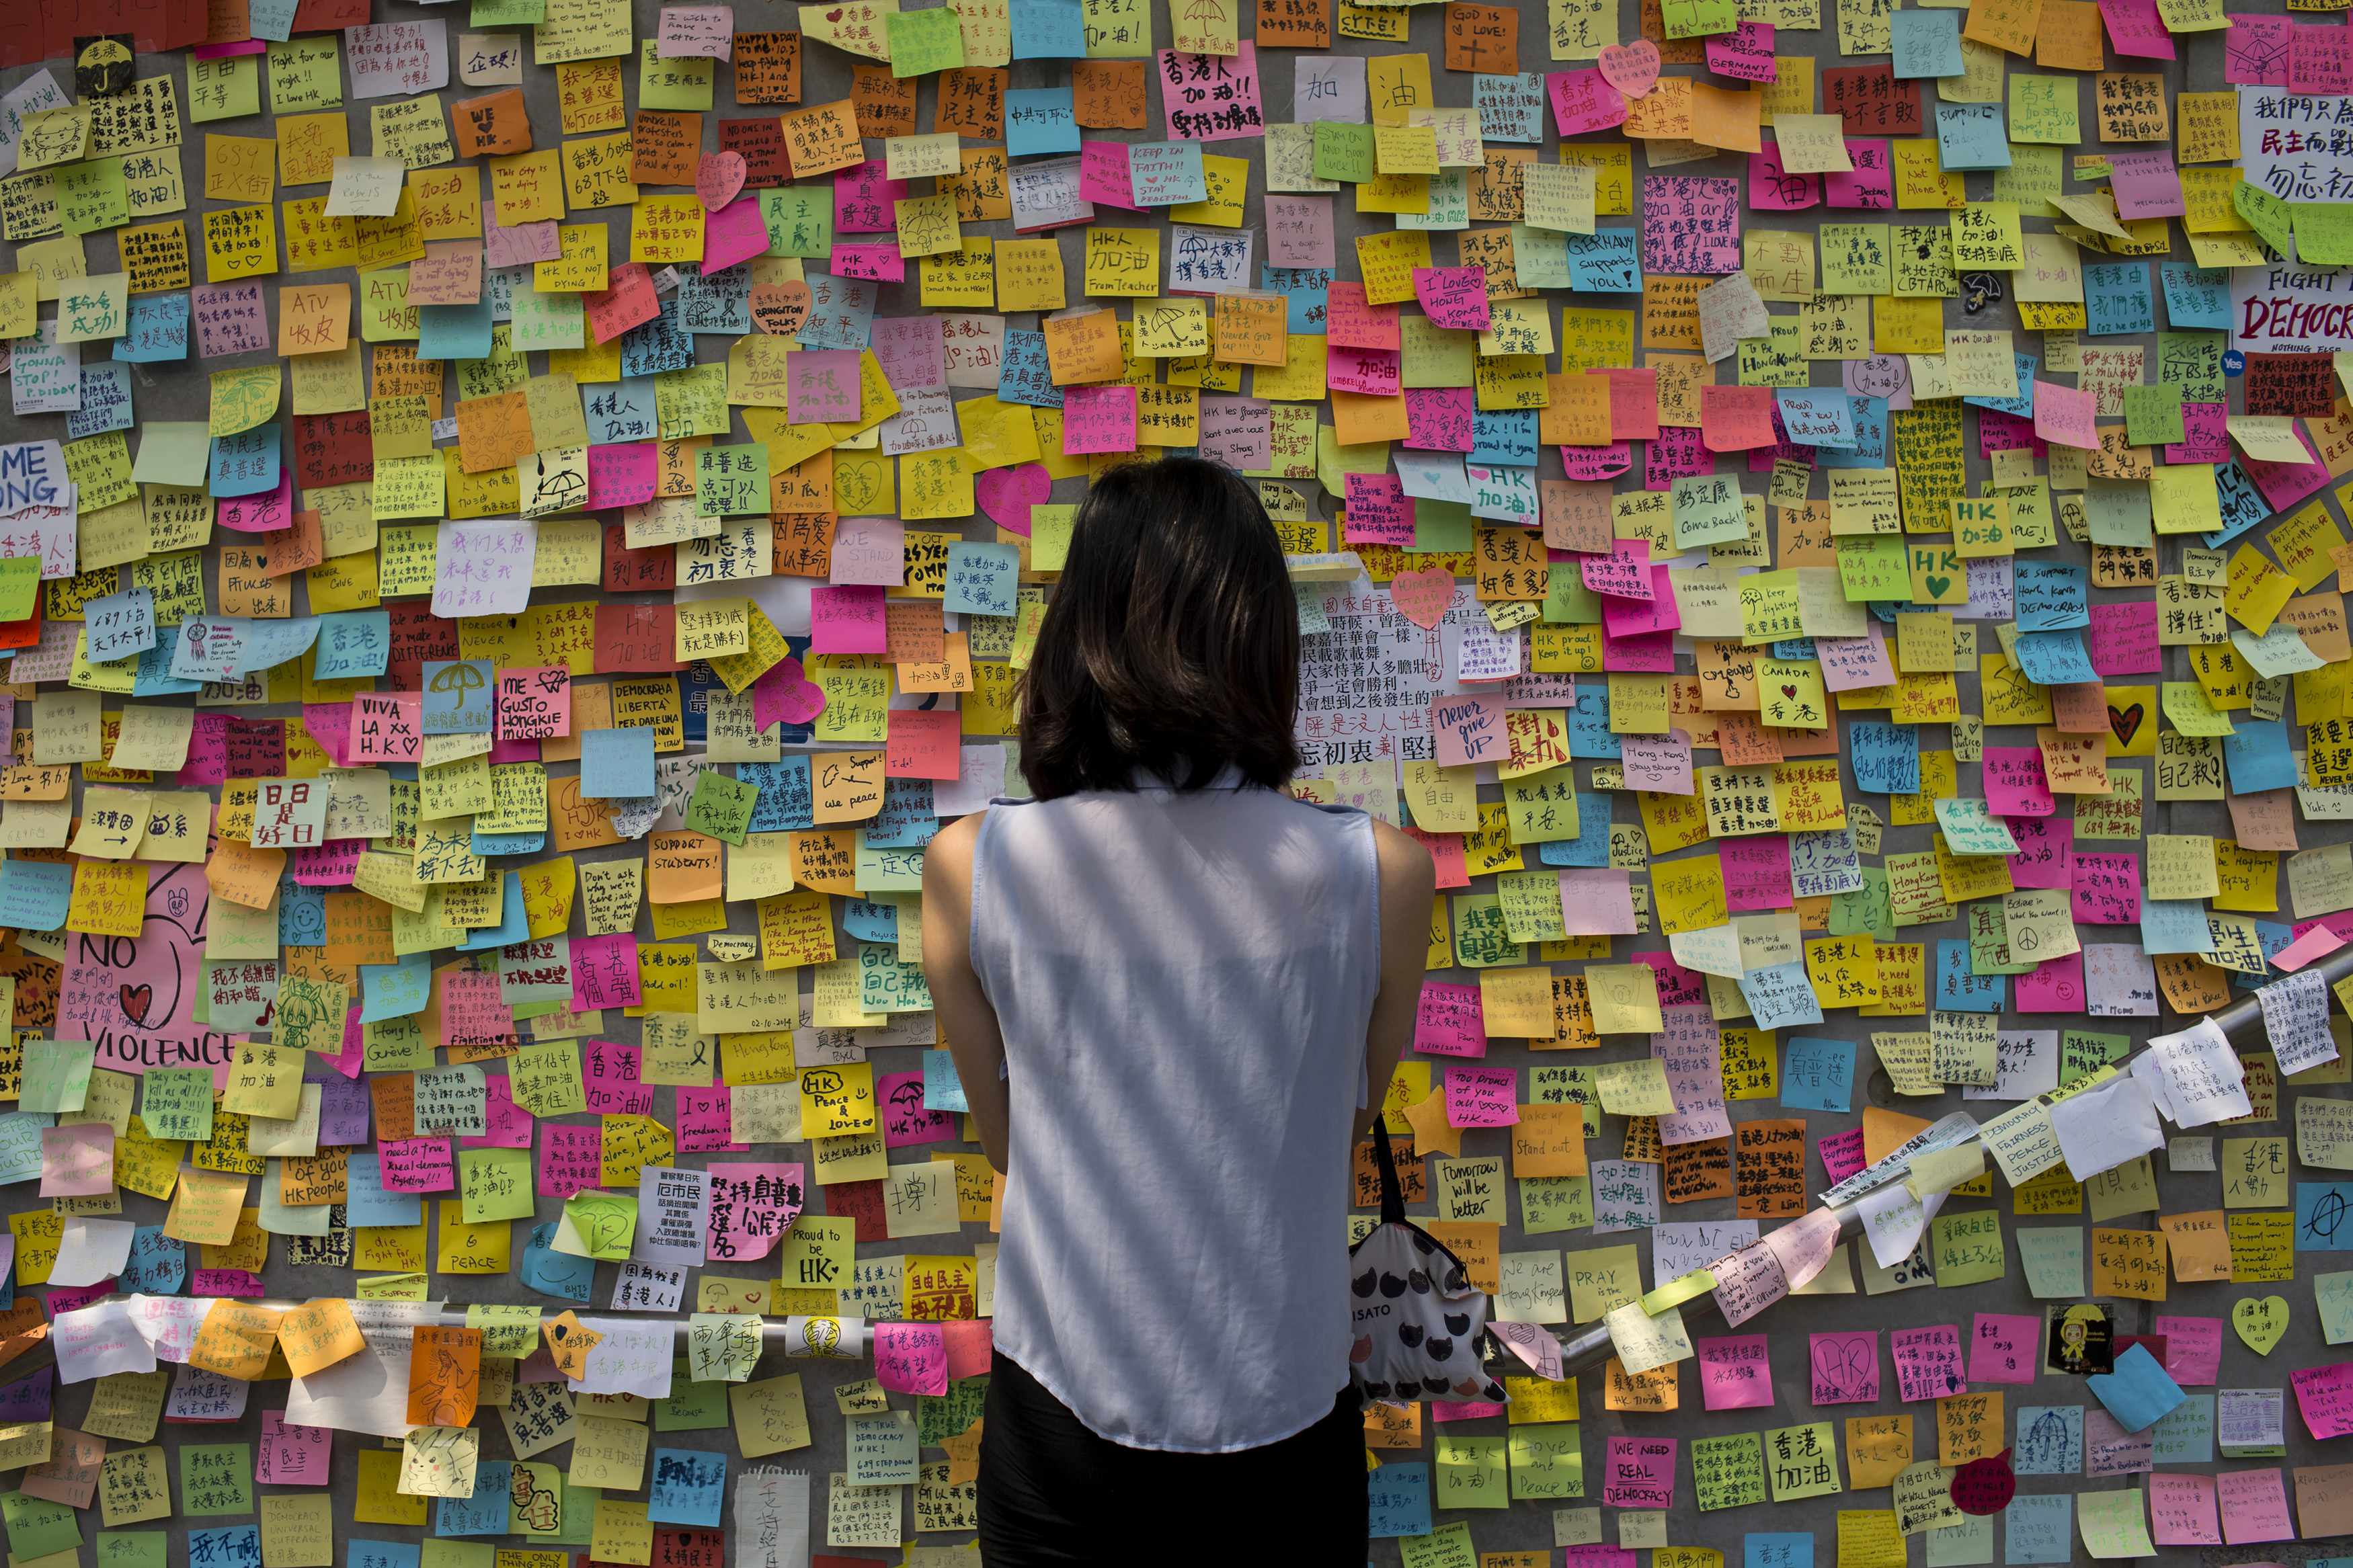 A woman looks at messages of support for pro-democracy demonstrations on a wall, as protesters block areas around government headquarters in Hong Kong October 7,2014. Pro-democracy demonstrations in Hong Kong rolled into early Tuesday with hundreds of students remaining camped out in the heart of the city after more than a week of rallies and behind-the-scenes talks showing modest signs of progress.   REUTERS/Tyrone Siu (CHINA - Tags: POLITICS CIVIL UNREST CRIME LAW) - RTR497KG